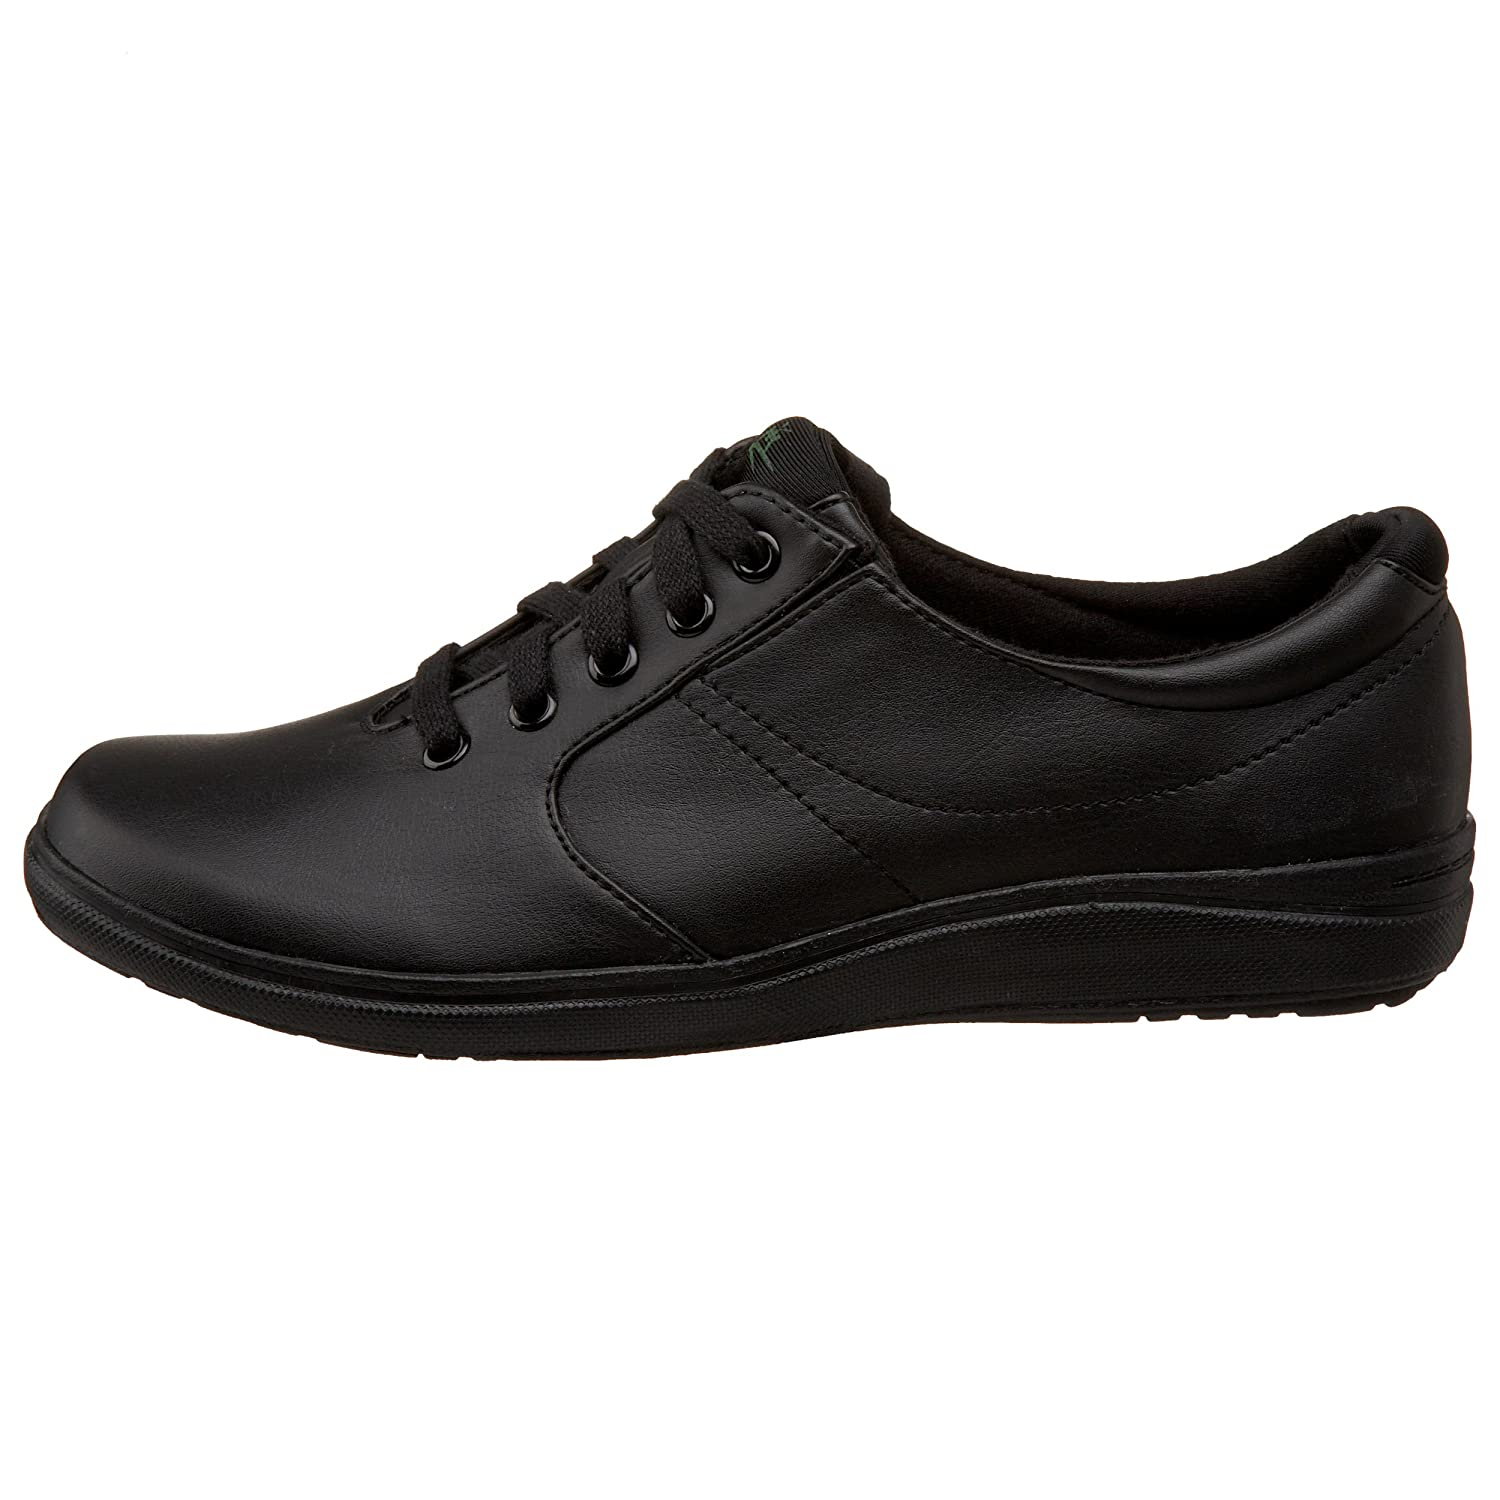 Grasshoppers Women's B000K9CES2 Stretch Plus Lace-Up Sneaker B000K9CES2 Women's 10 XW US|Black 5662ef